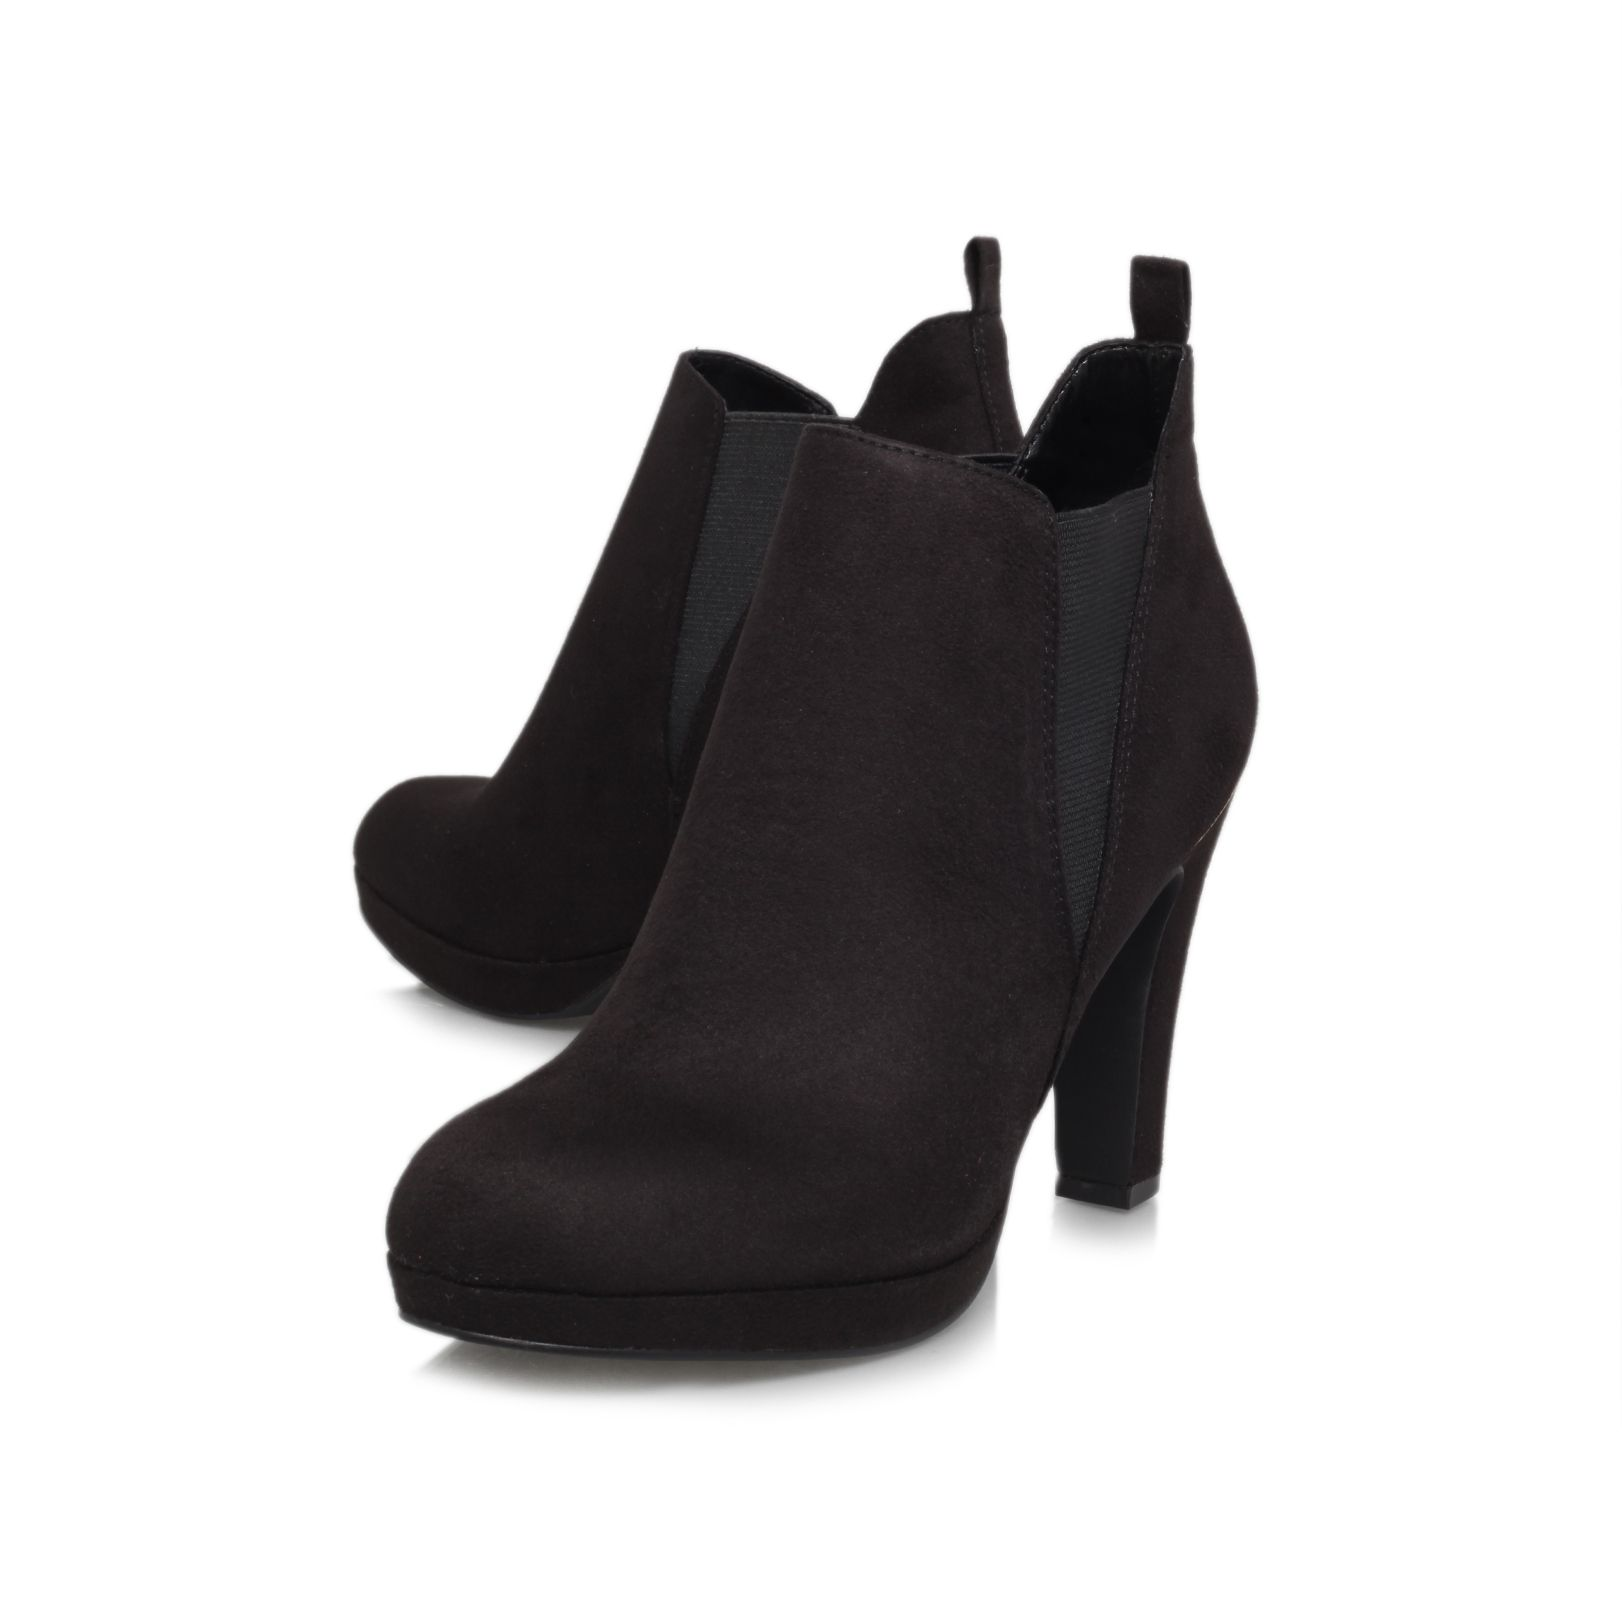 Tempt high heeled boots